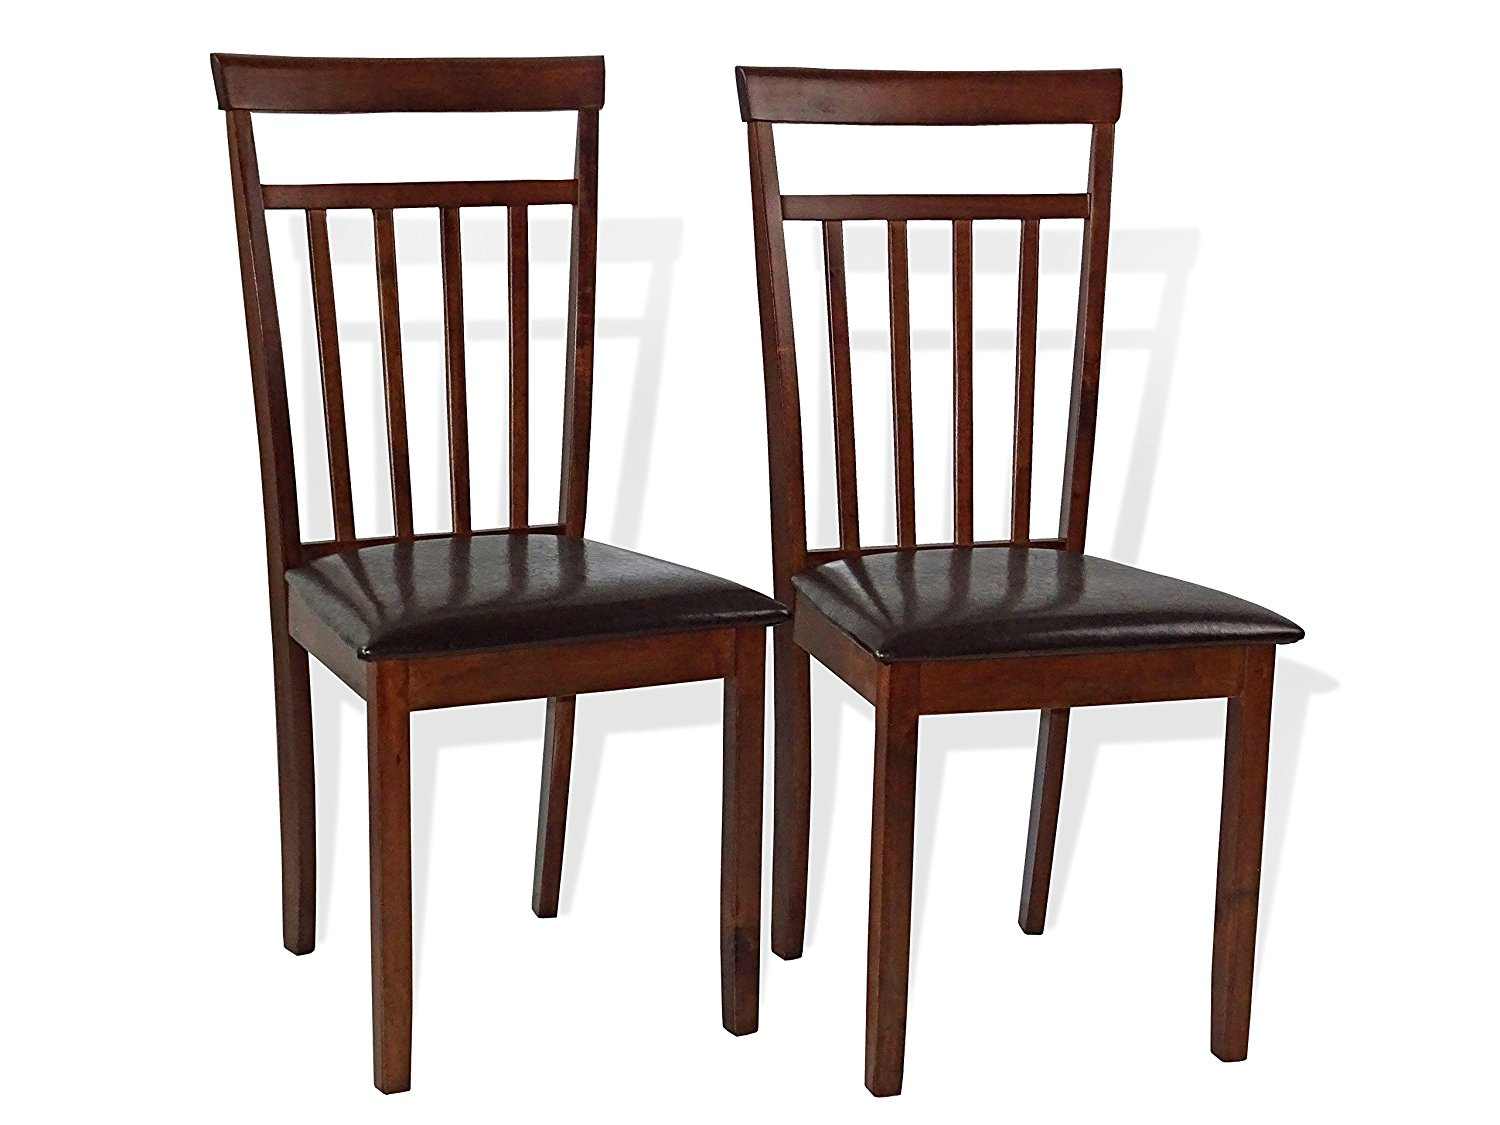 Hamptons Style Dining Chairs Hamptons Plastic Dining Chair Rattan Usa